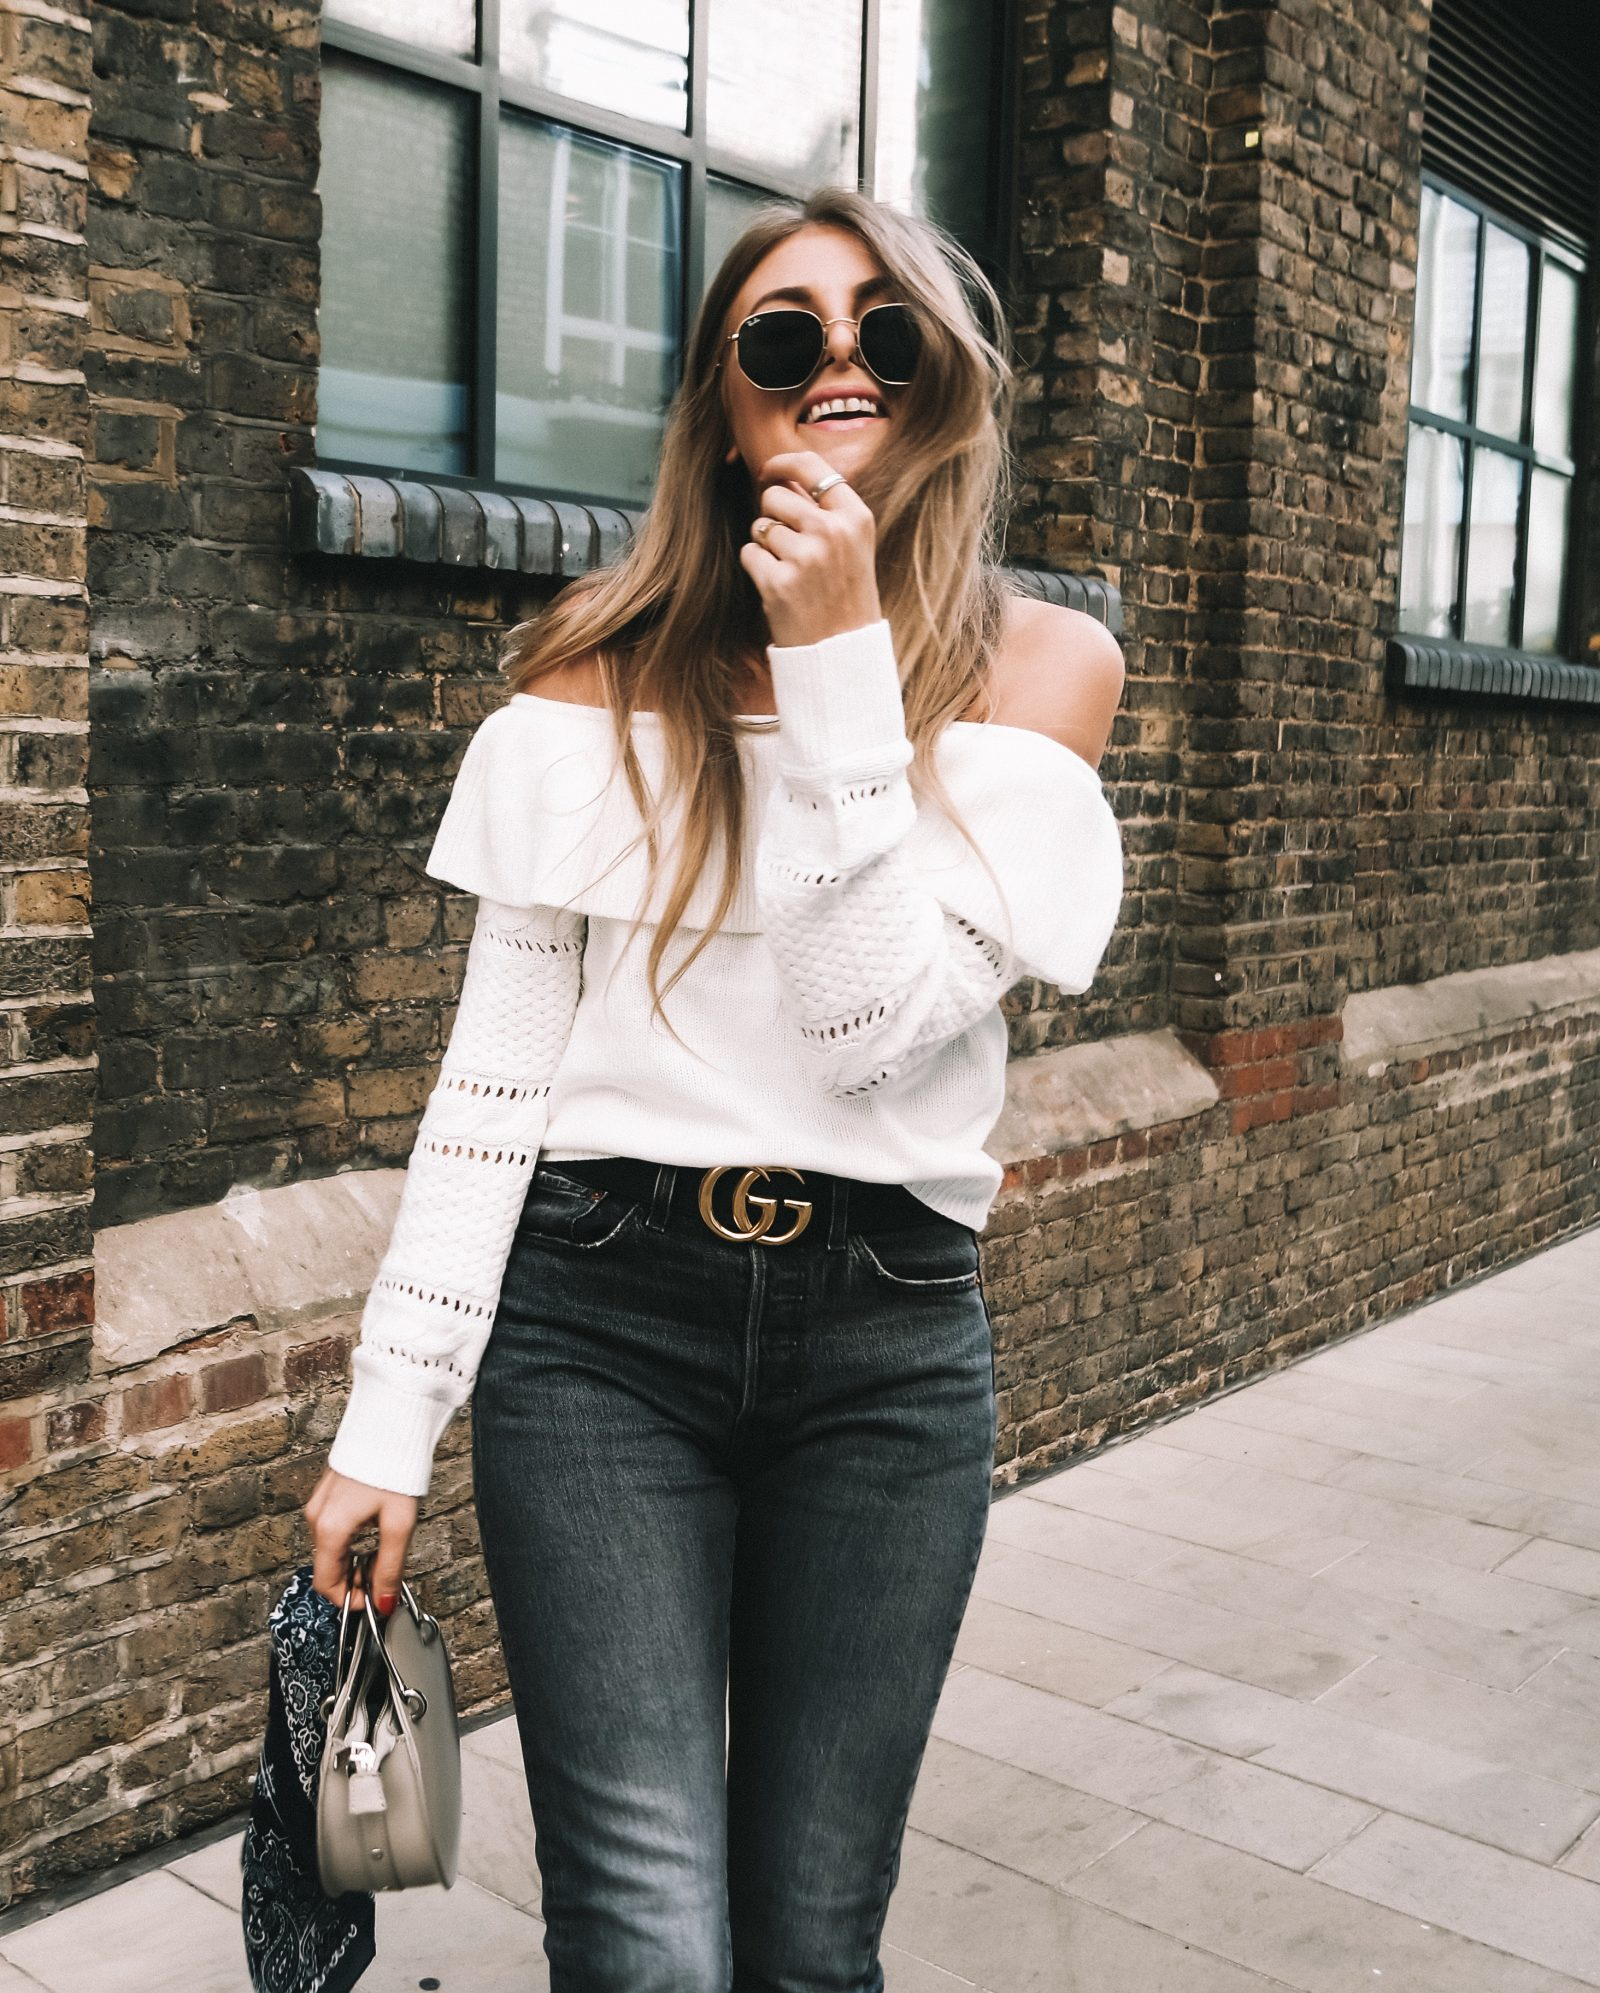 Moving To London - Lulus Outfit - Autumn Outfit - Sinead Crowe